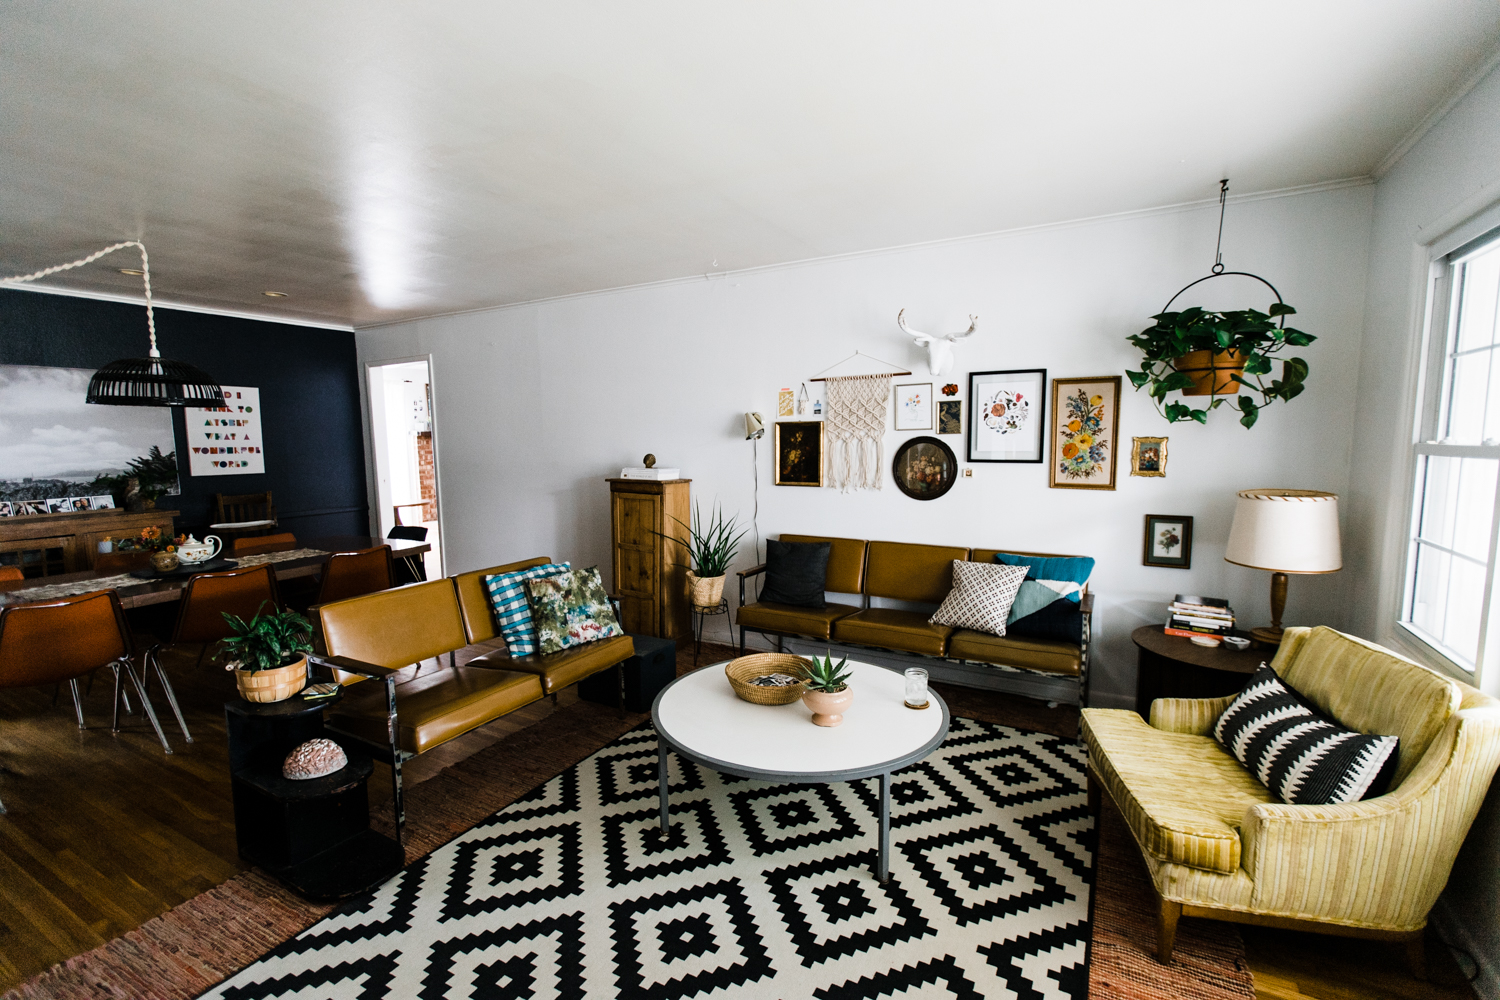 Abbey-Wells-Home-eclectic-colorful-home-WEB-94.jpg